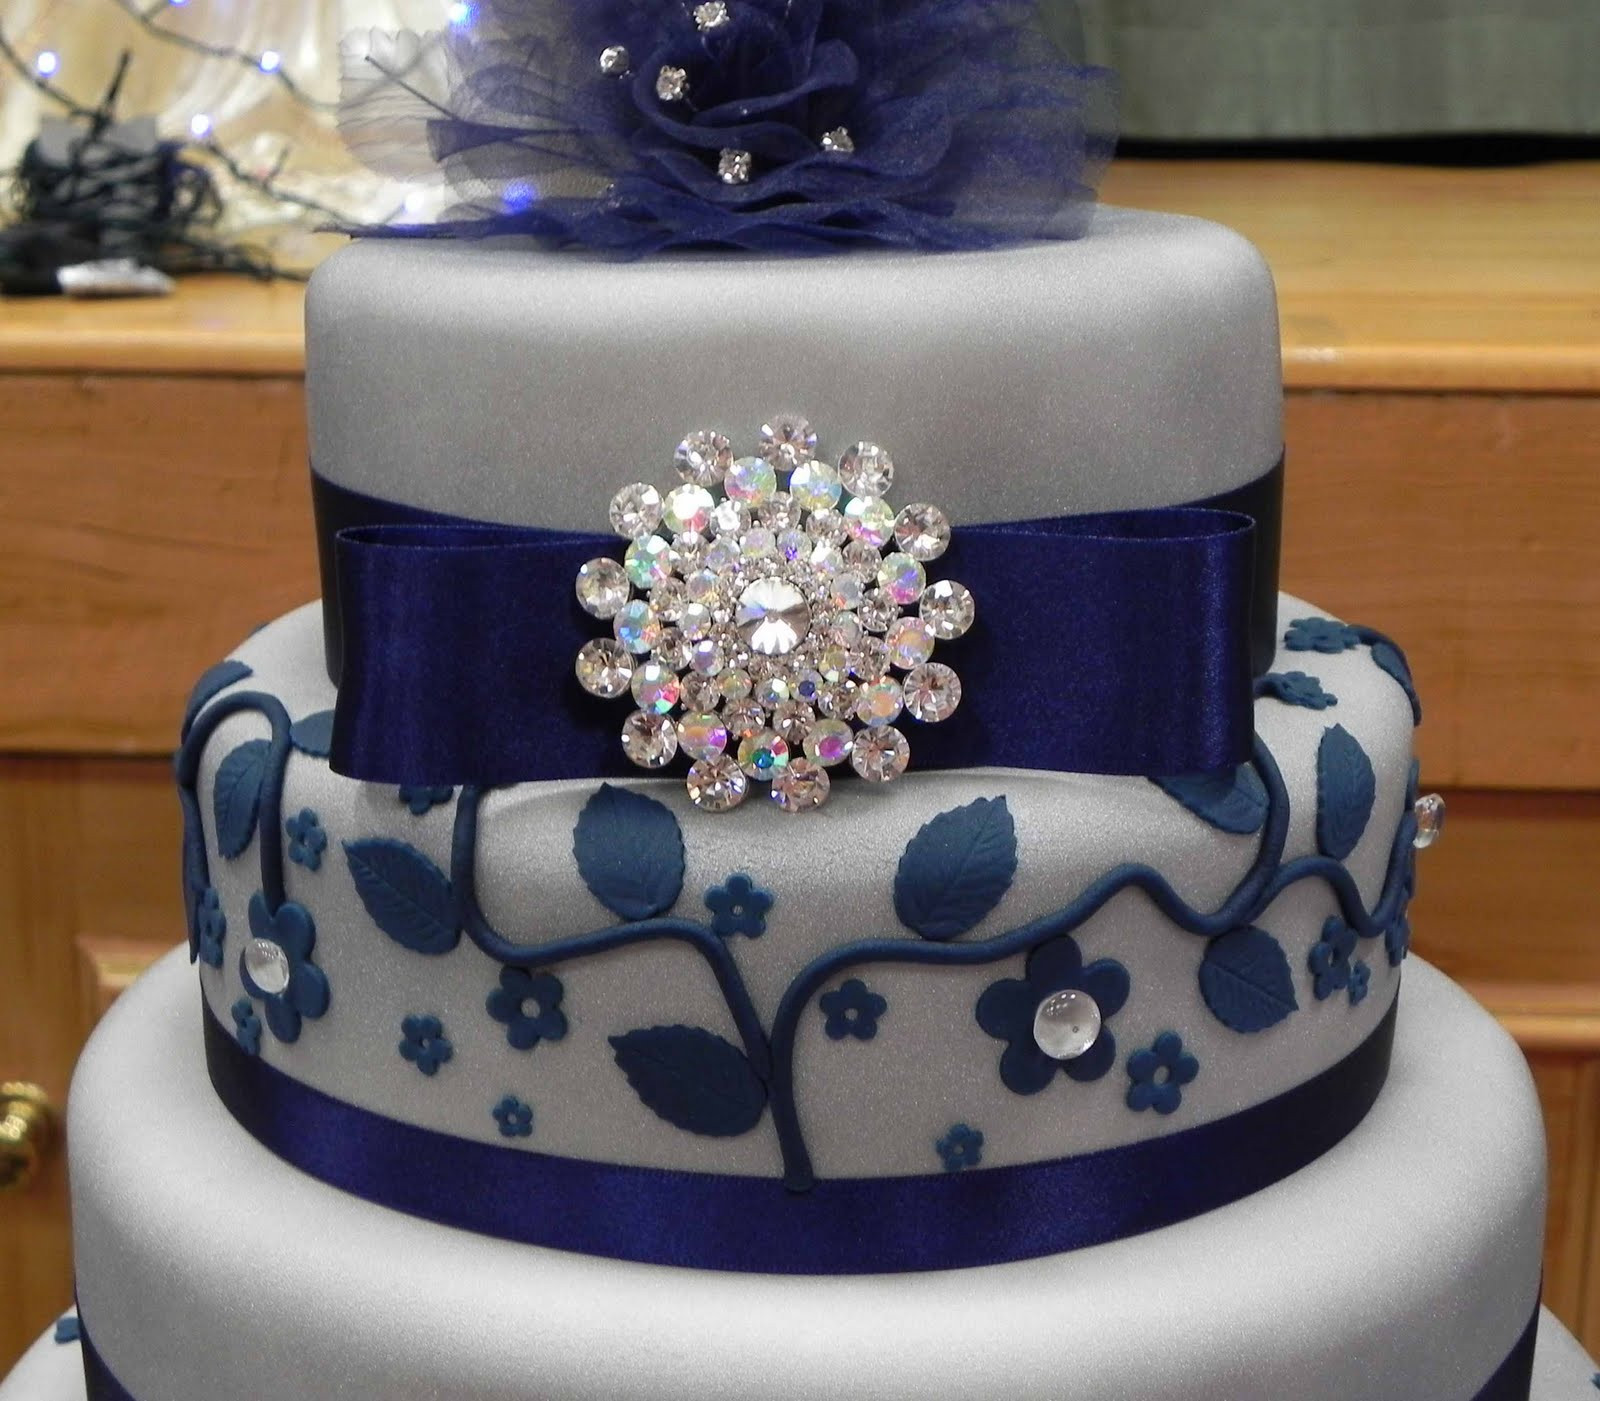 Wedding Cakes Blue And Silver  Cake by Lisa Price Silver and Blue wedding cake